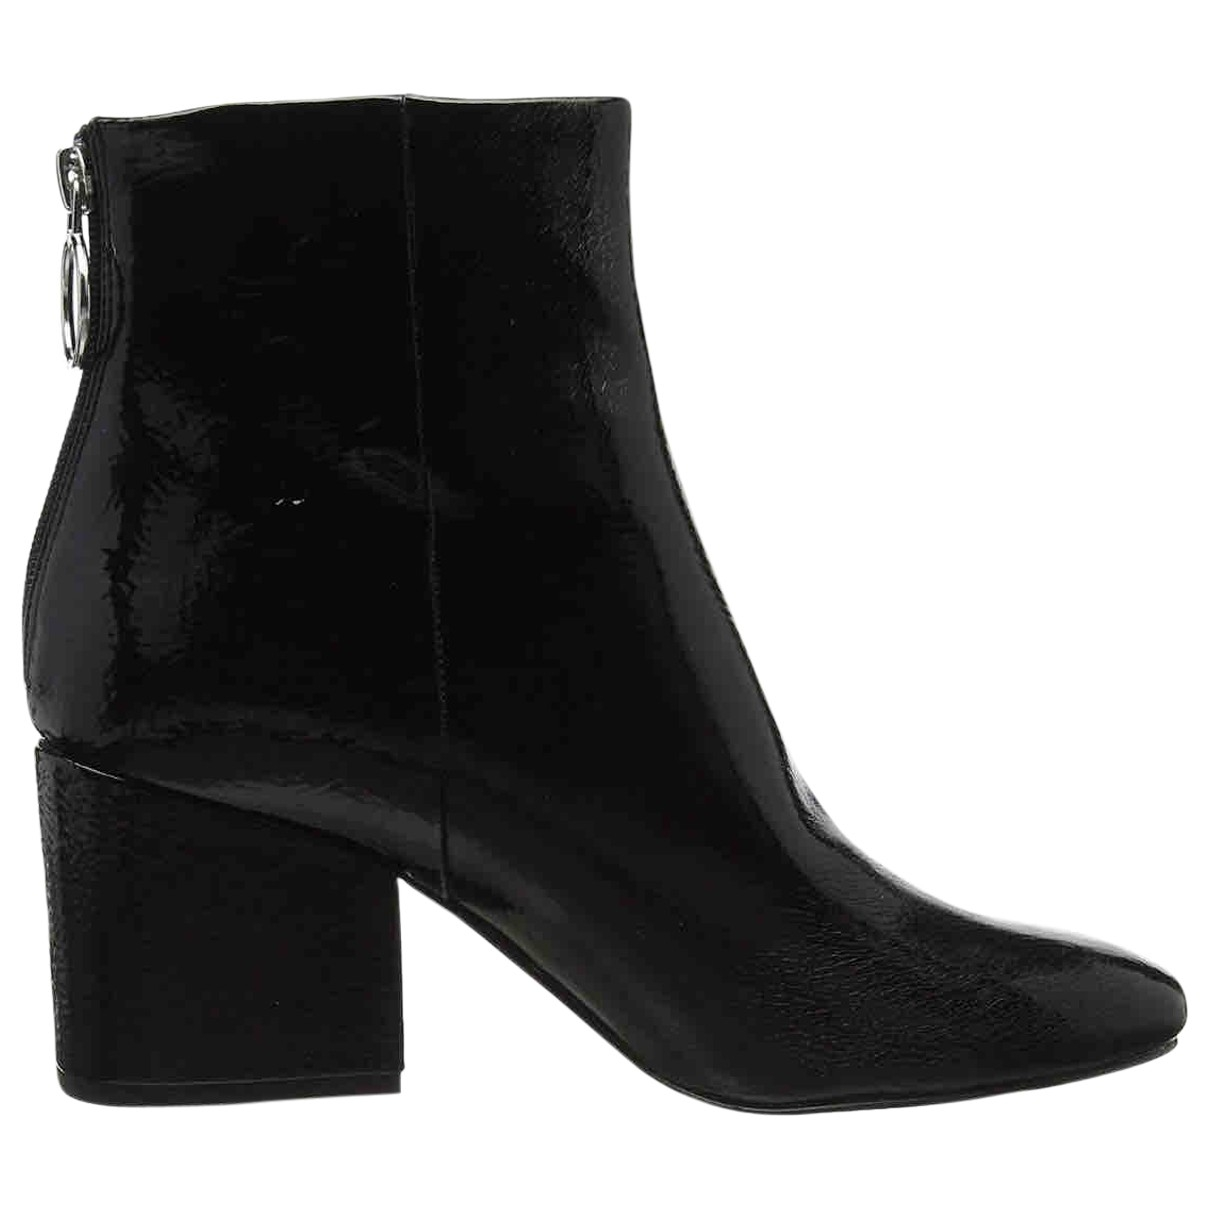 Steve Madden \N Black Patent leather Ankle boots for Women 41 EU